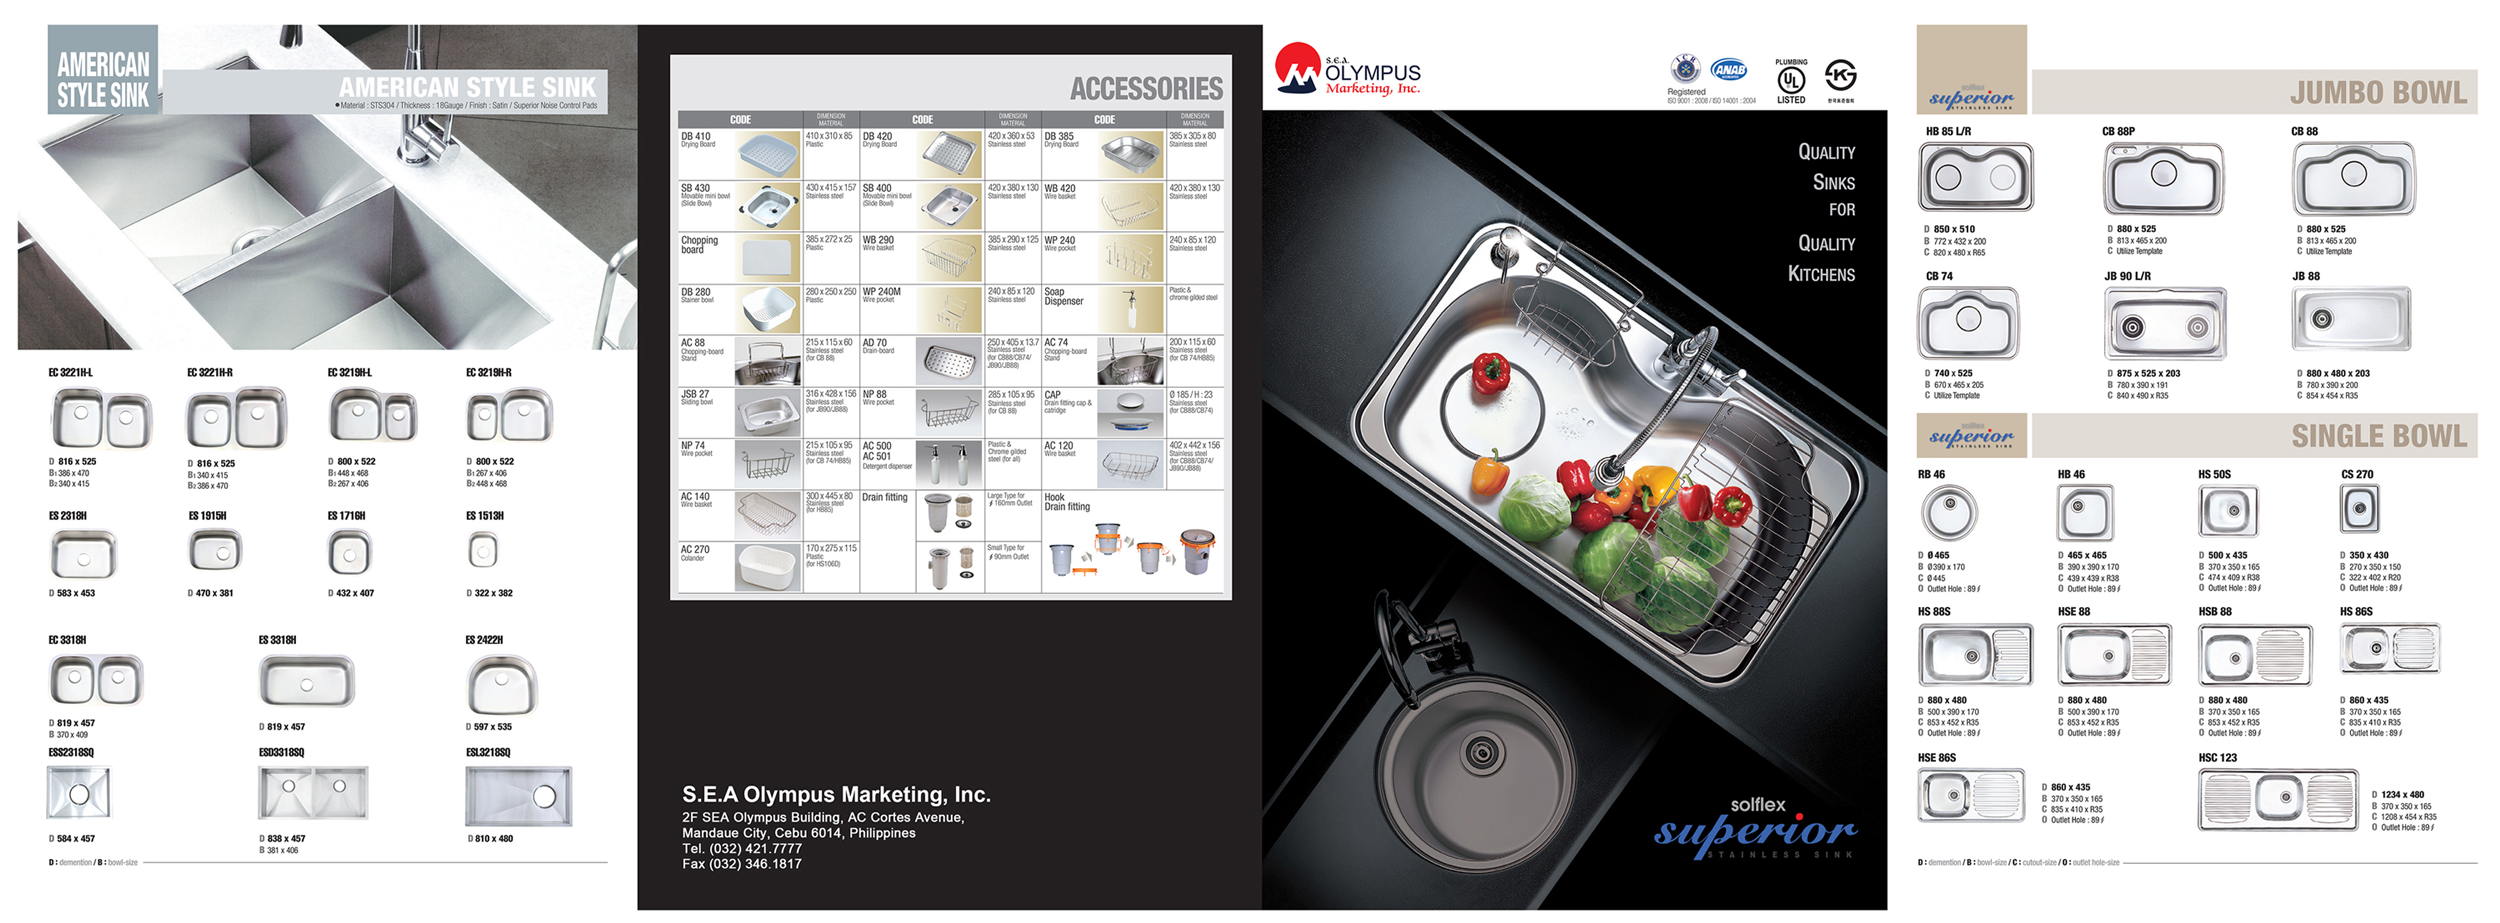 other superior stainless sink products